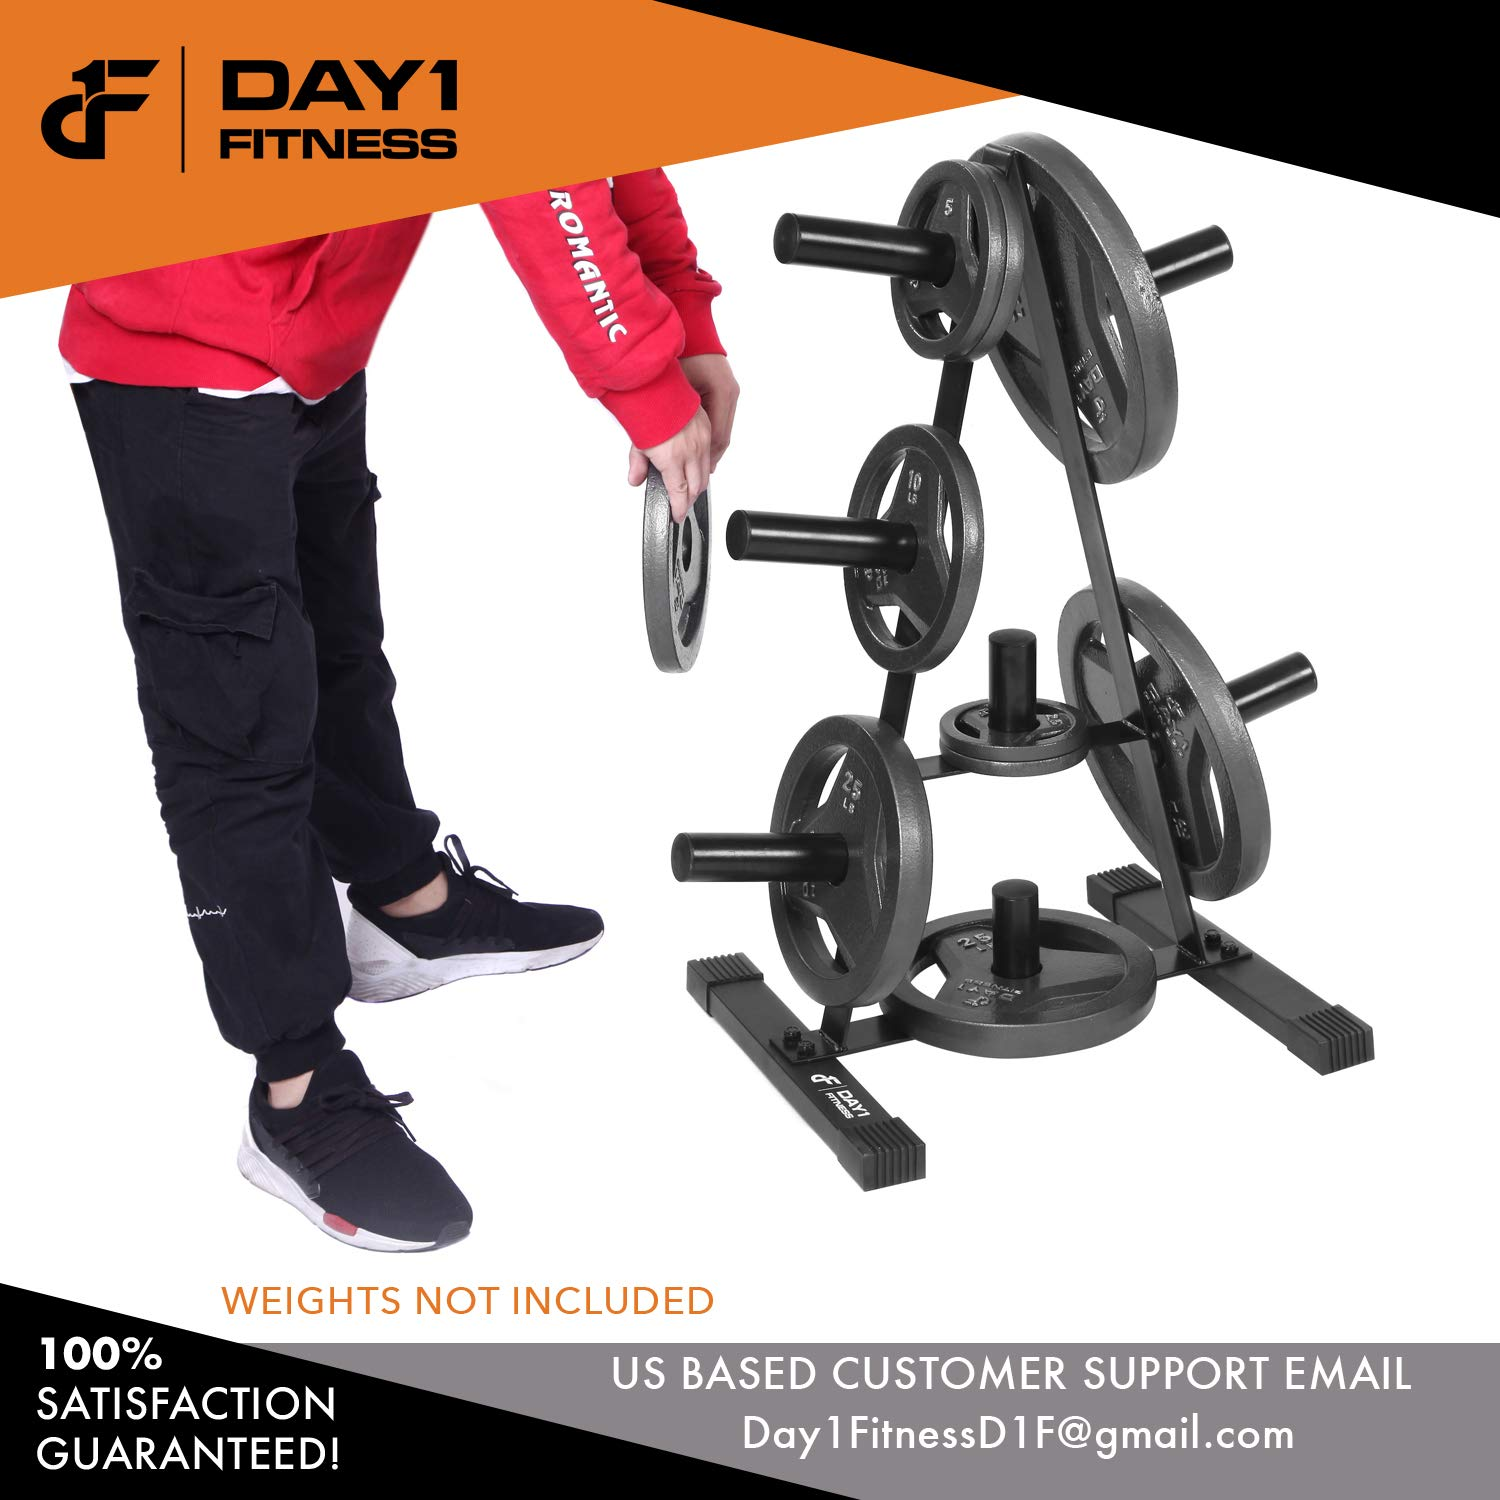 Olympic Weight Plate Rack, Holds up to 500lb of 2'' Weights by D1F - Black Weight Holder Tree with 7 Branches for Stacking and Storing High Capacity Weights- Heavy-Duty, Durable Triangle Plate Racks by Day 1 Fitness (Image #6)